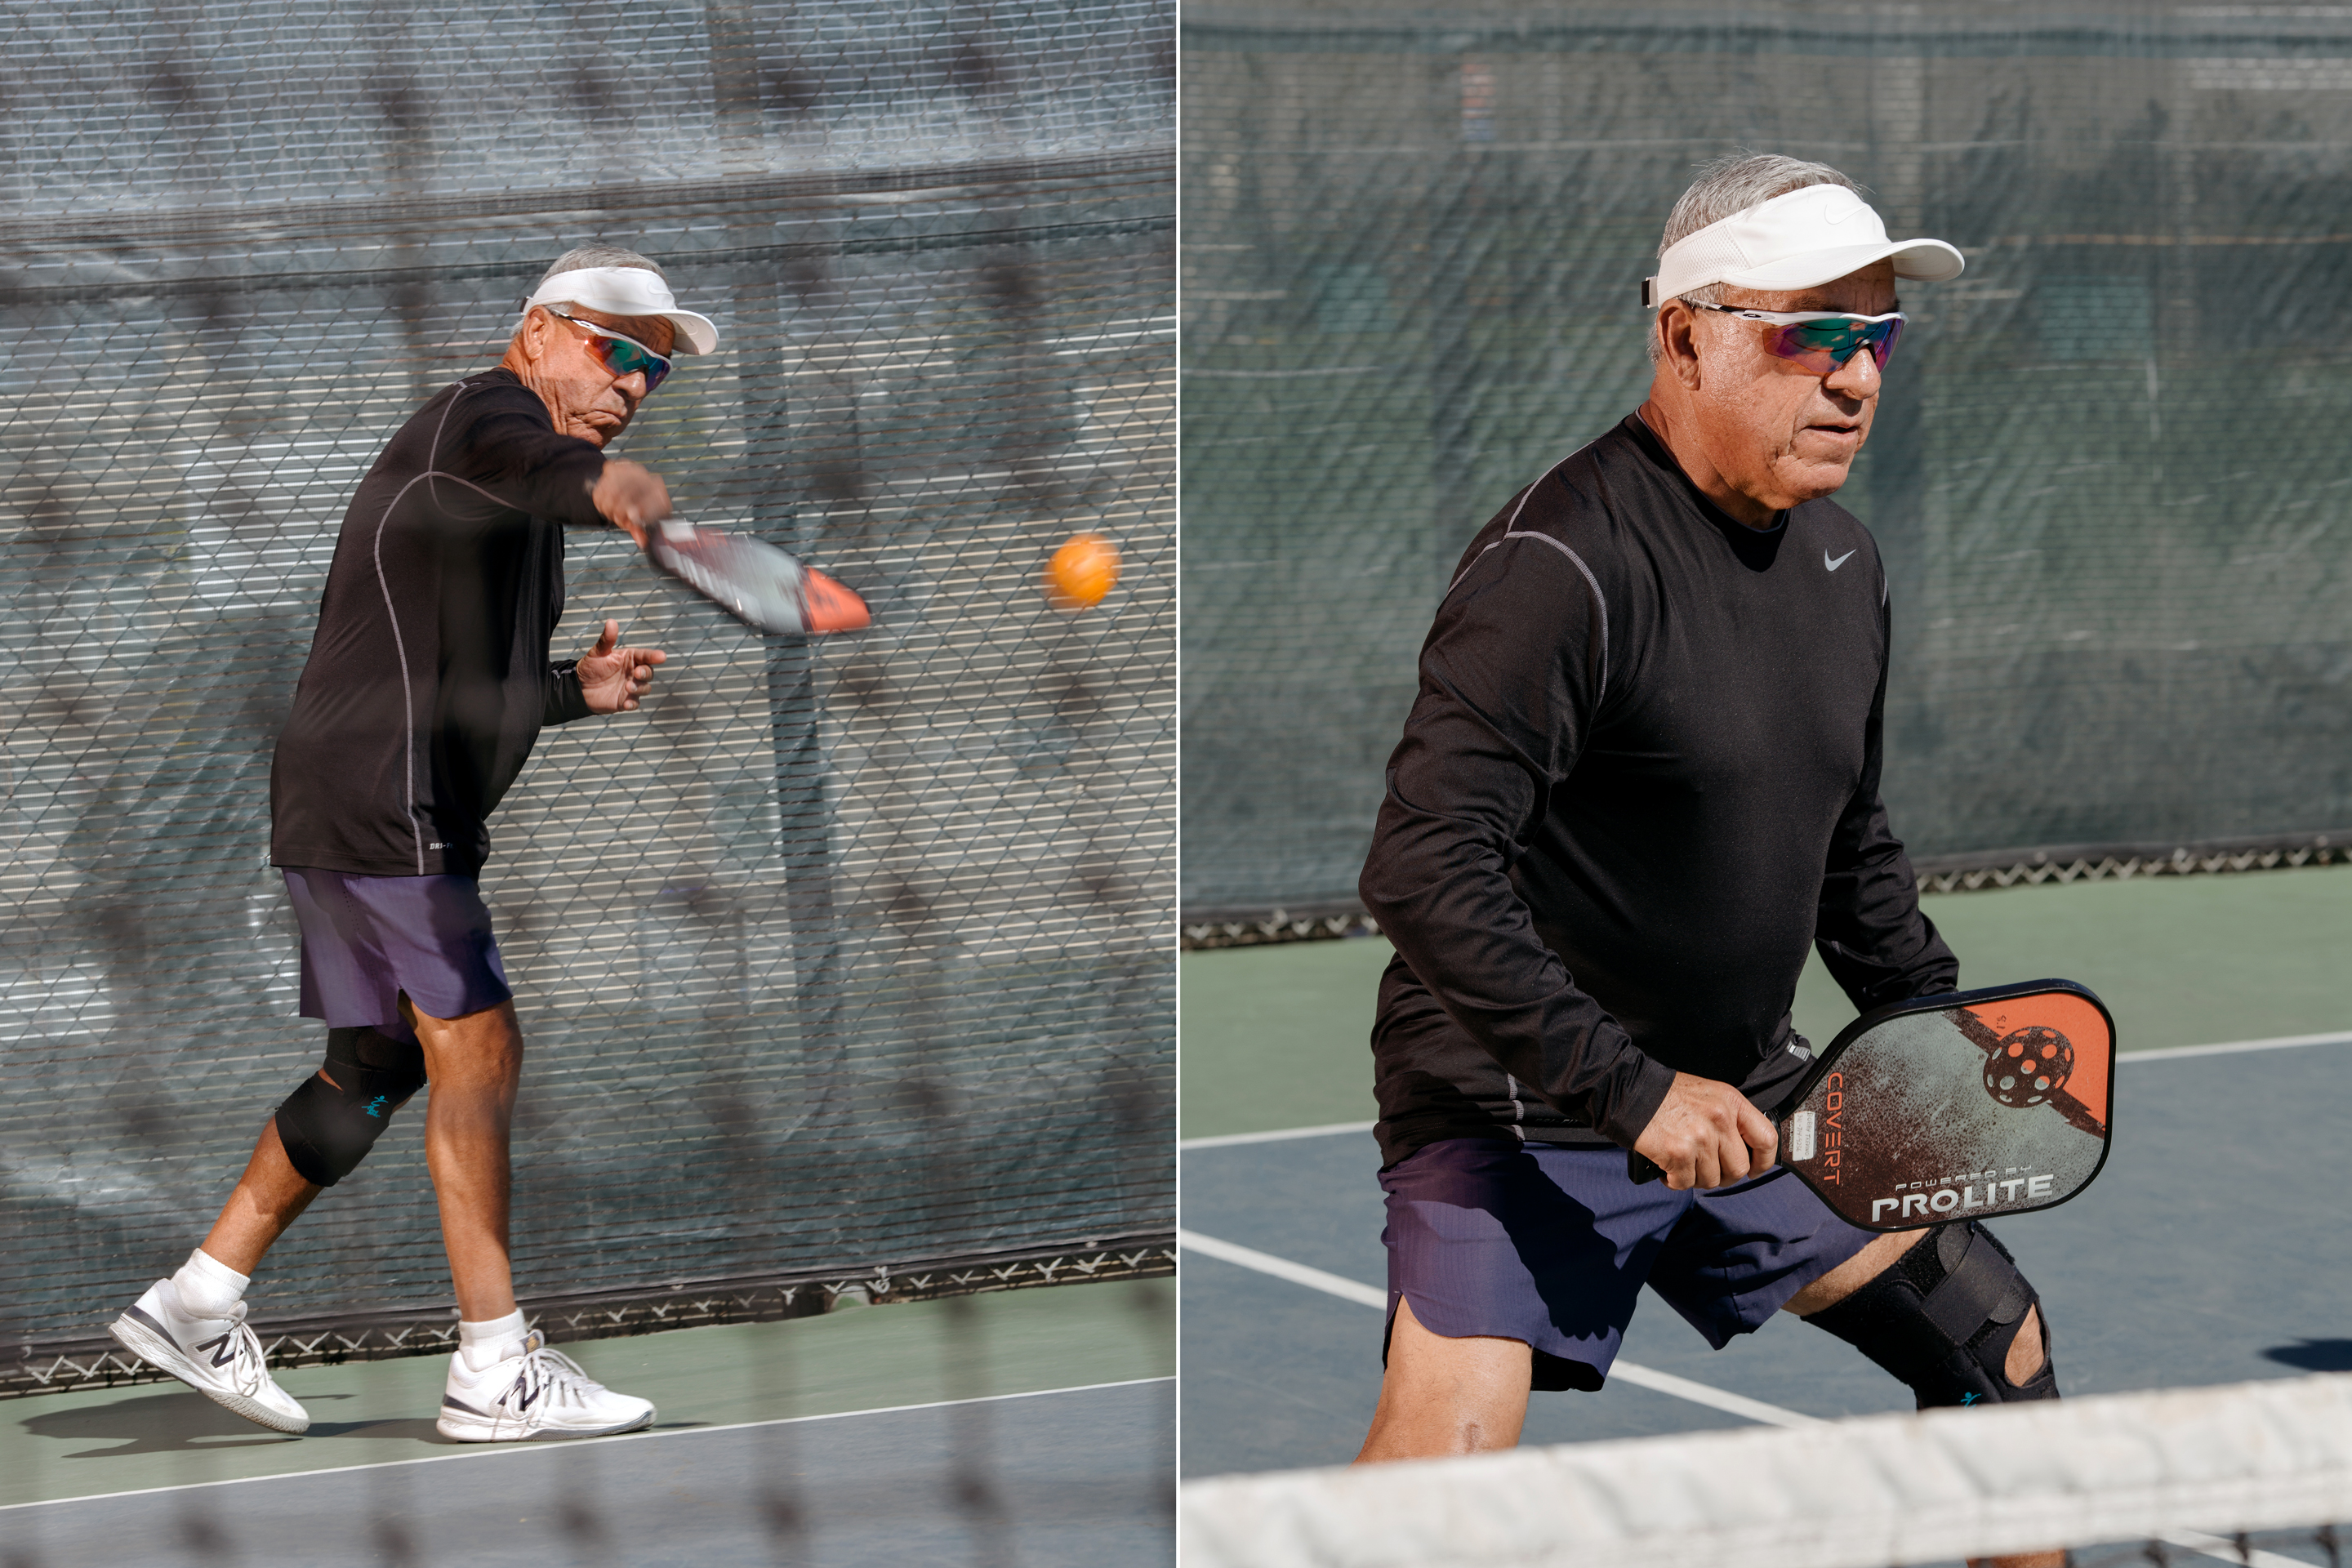 Bobby Travino of the Hermosa Beach pickleball scene.